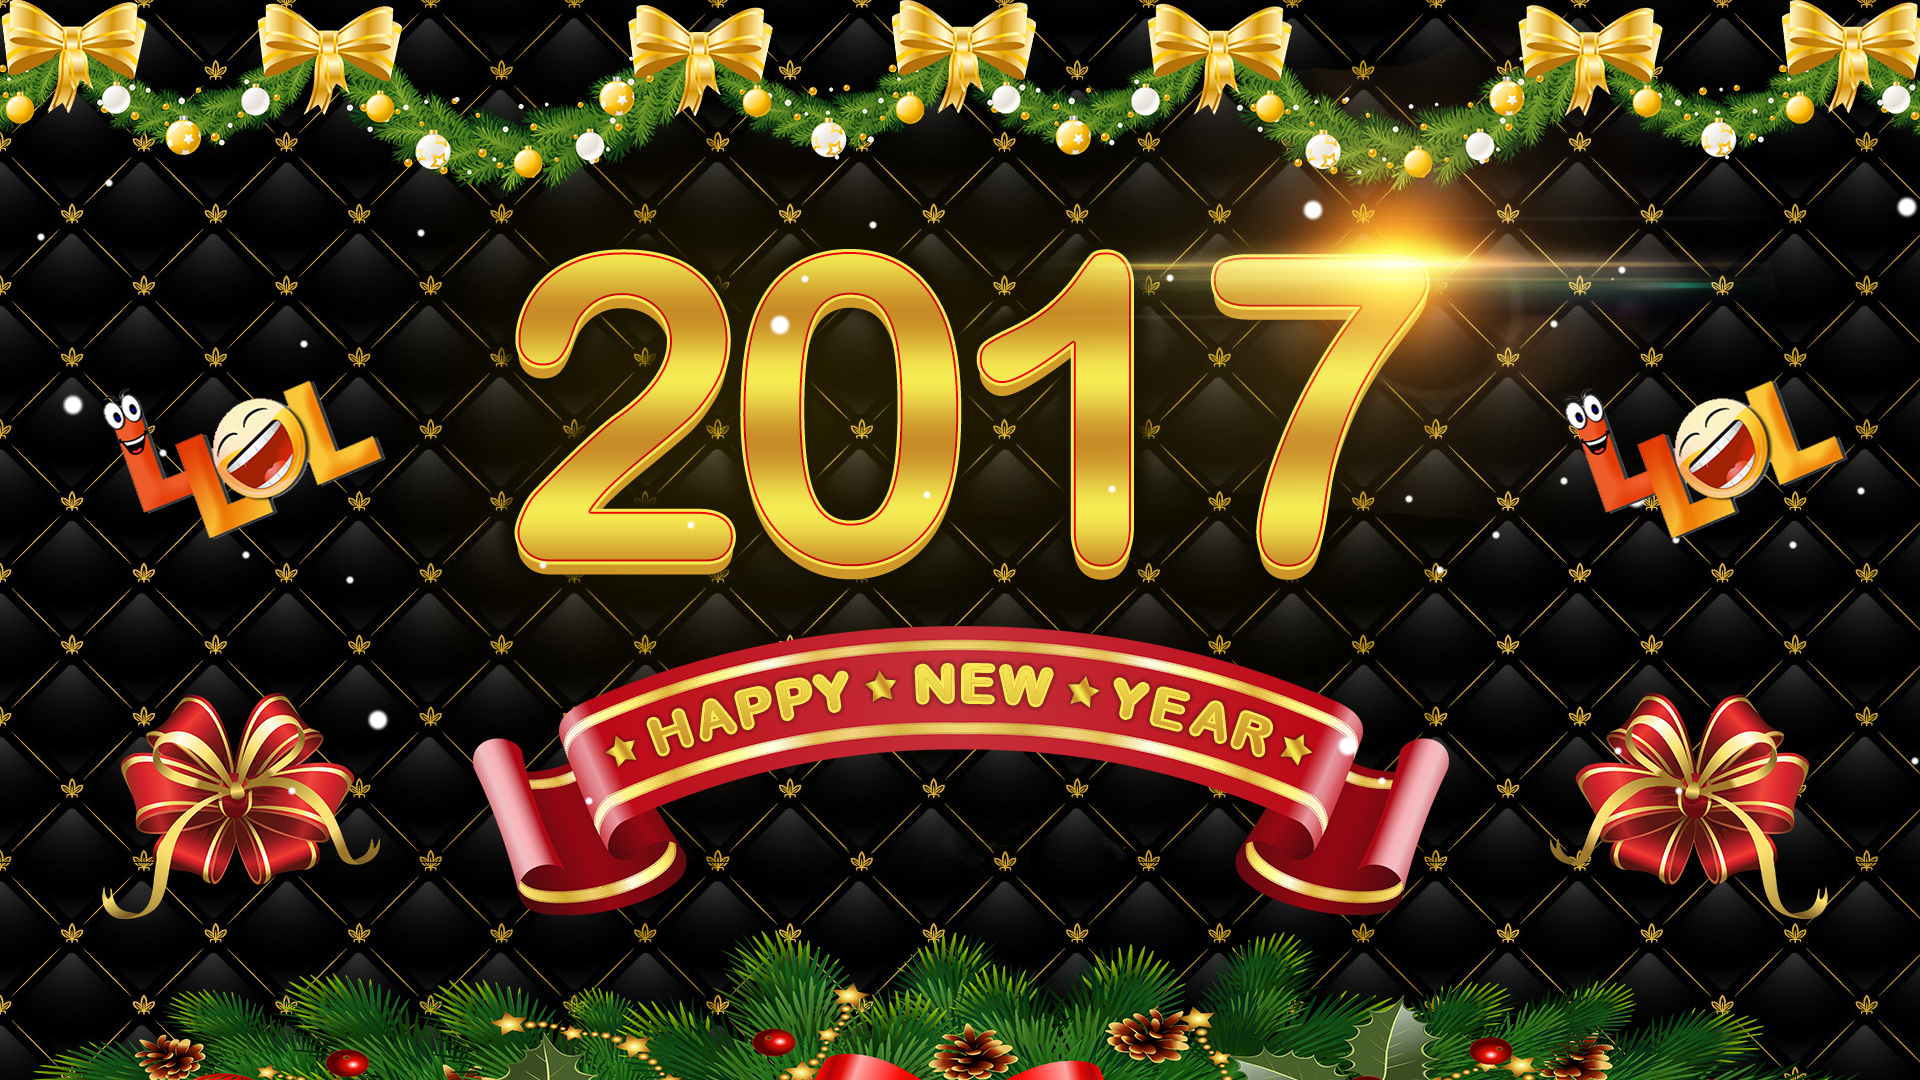 New Year 2017 Hd Wallpaper: New Year 2017 HD Wallpaper